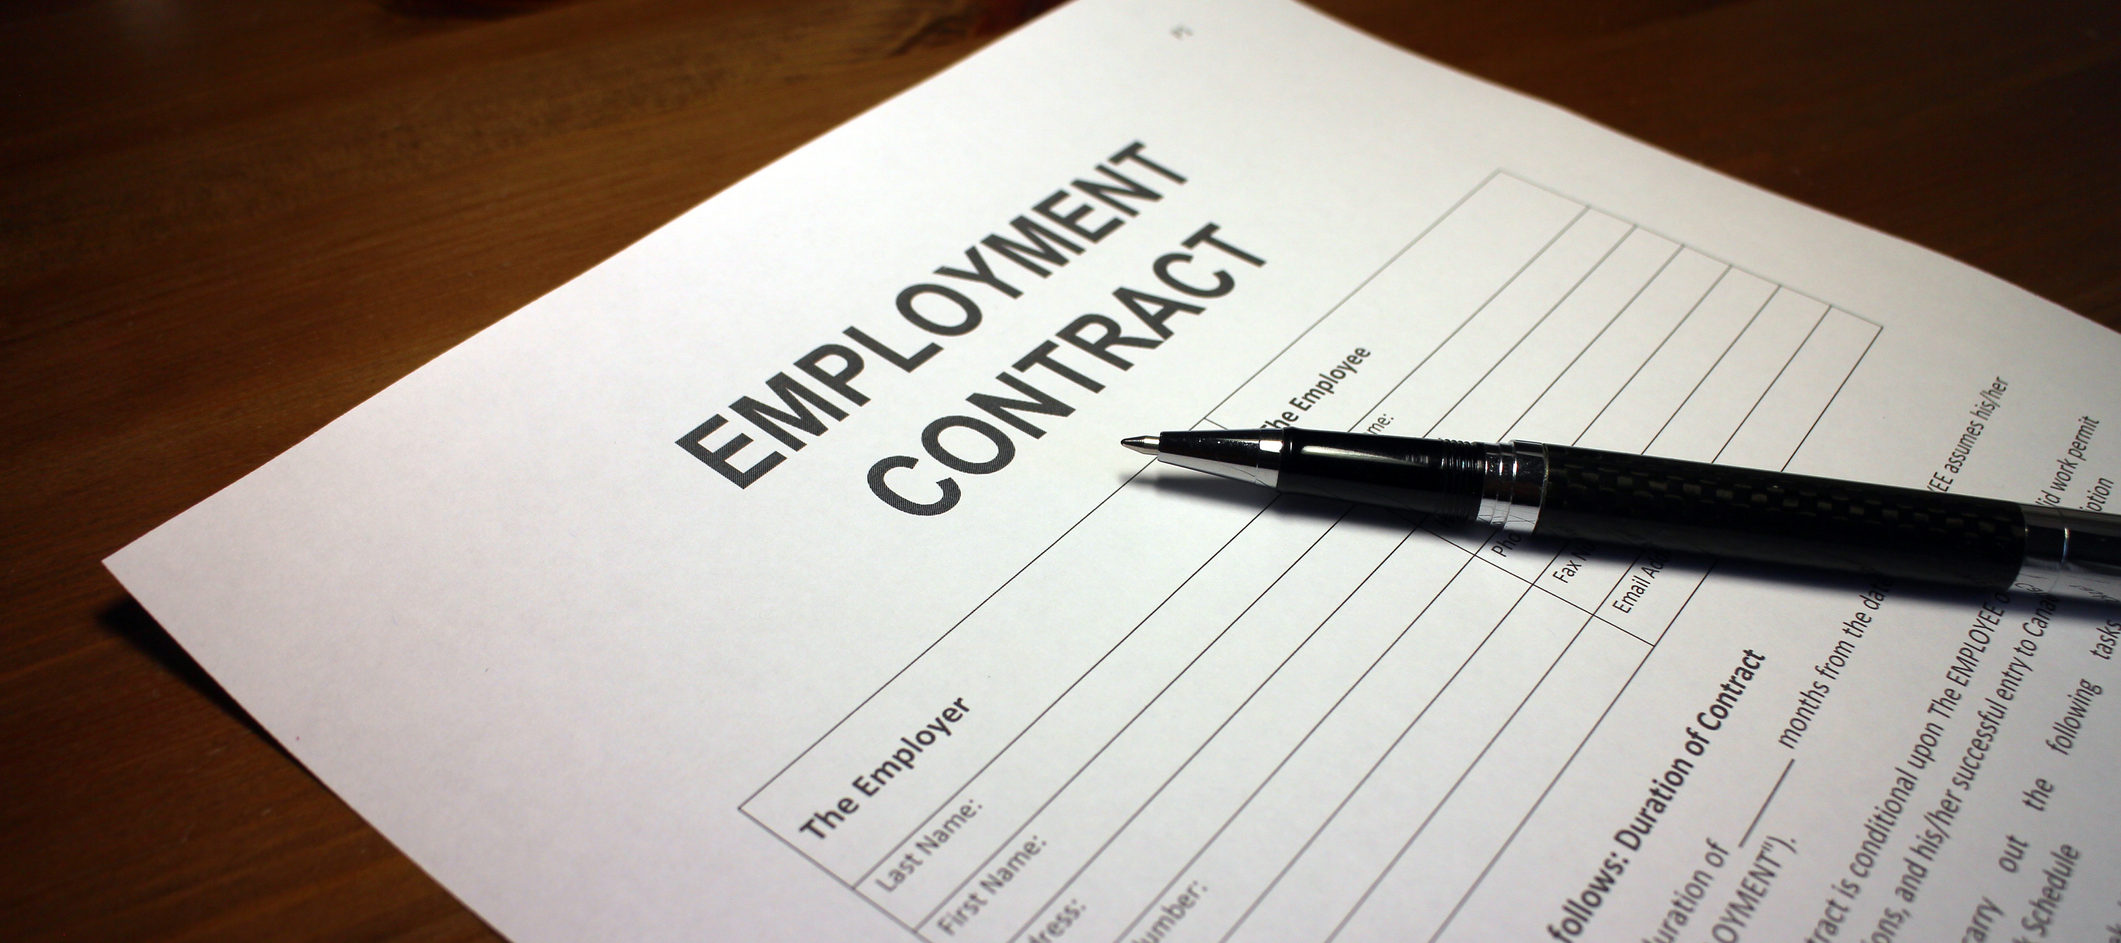 Employment contract and pen